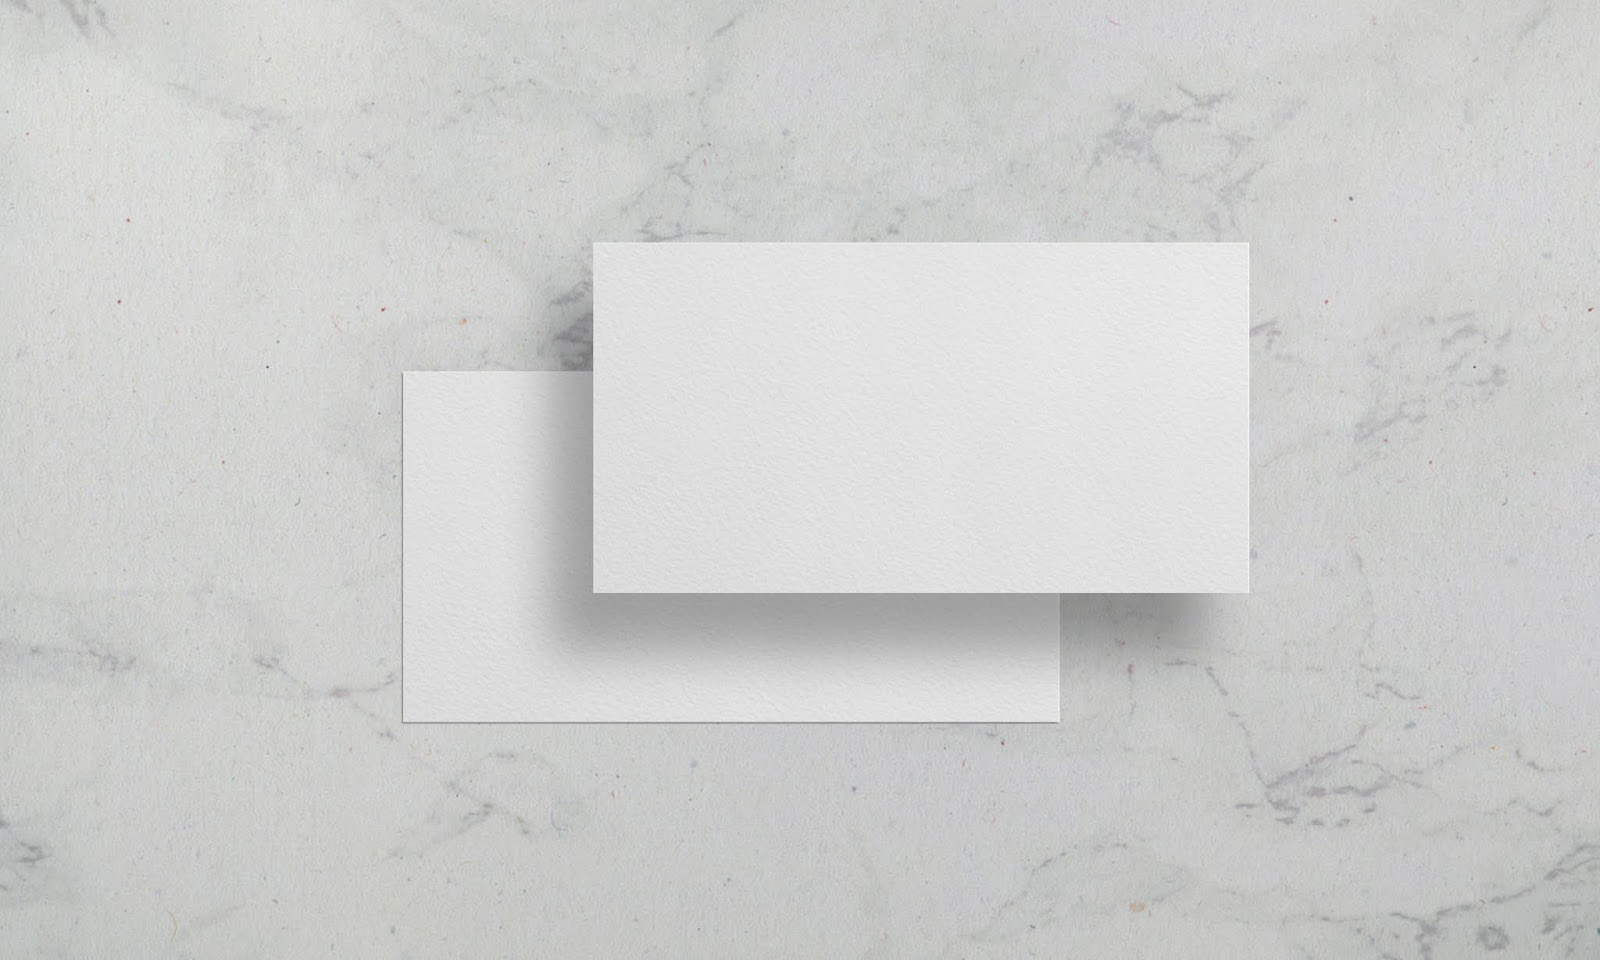 Natural Paper Texture Business Card Mock-Up - Free Download